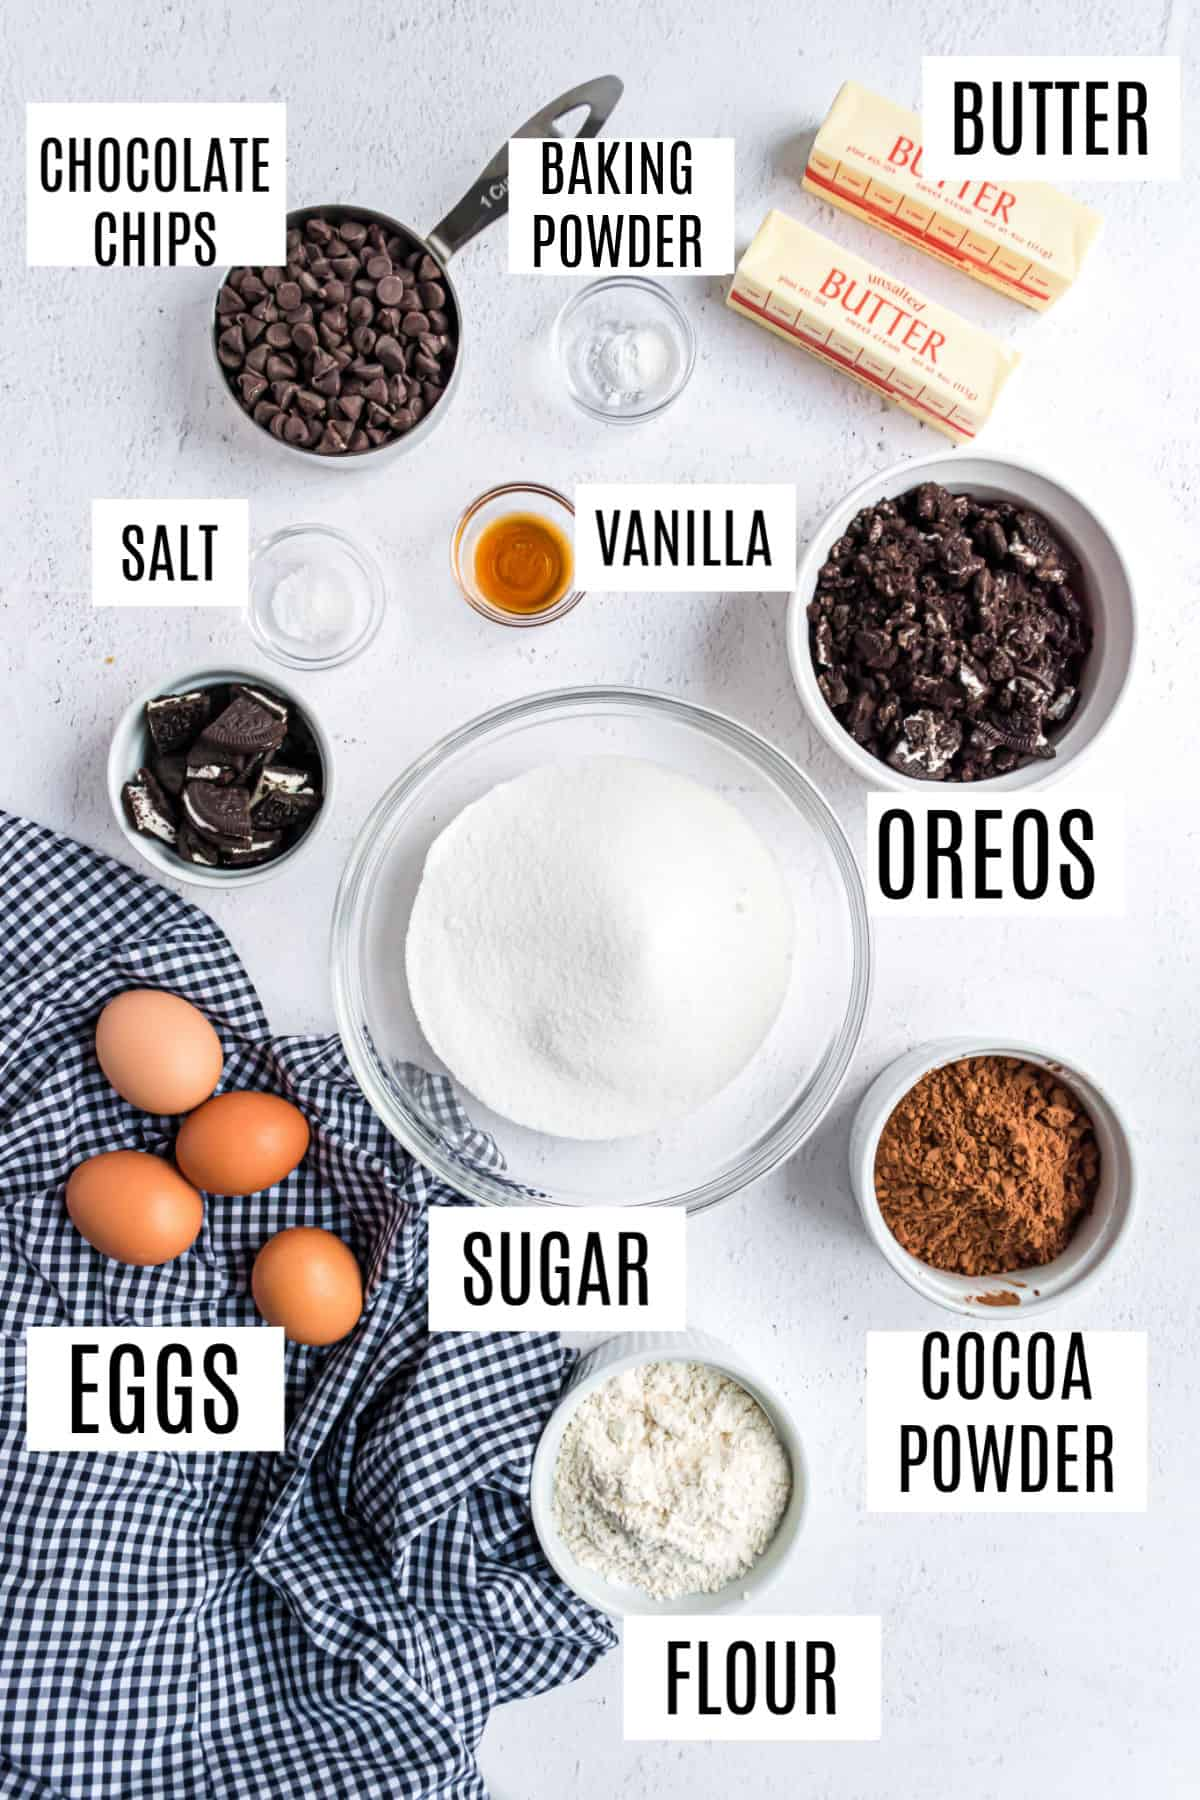 Ingredients needed to make oreo brownies from scratch.